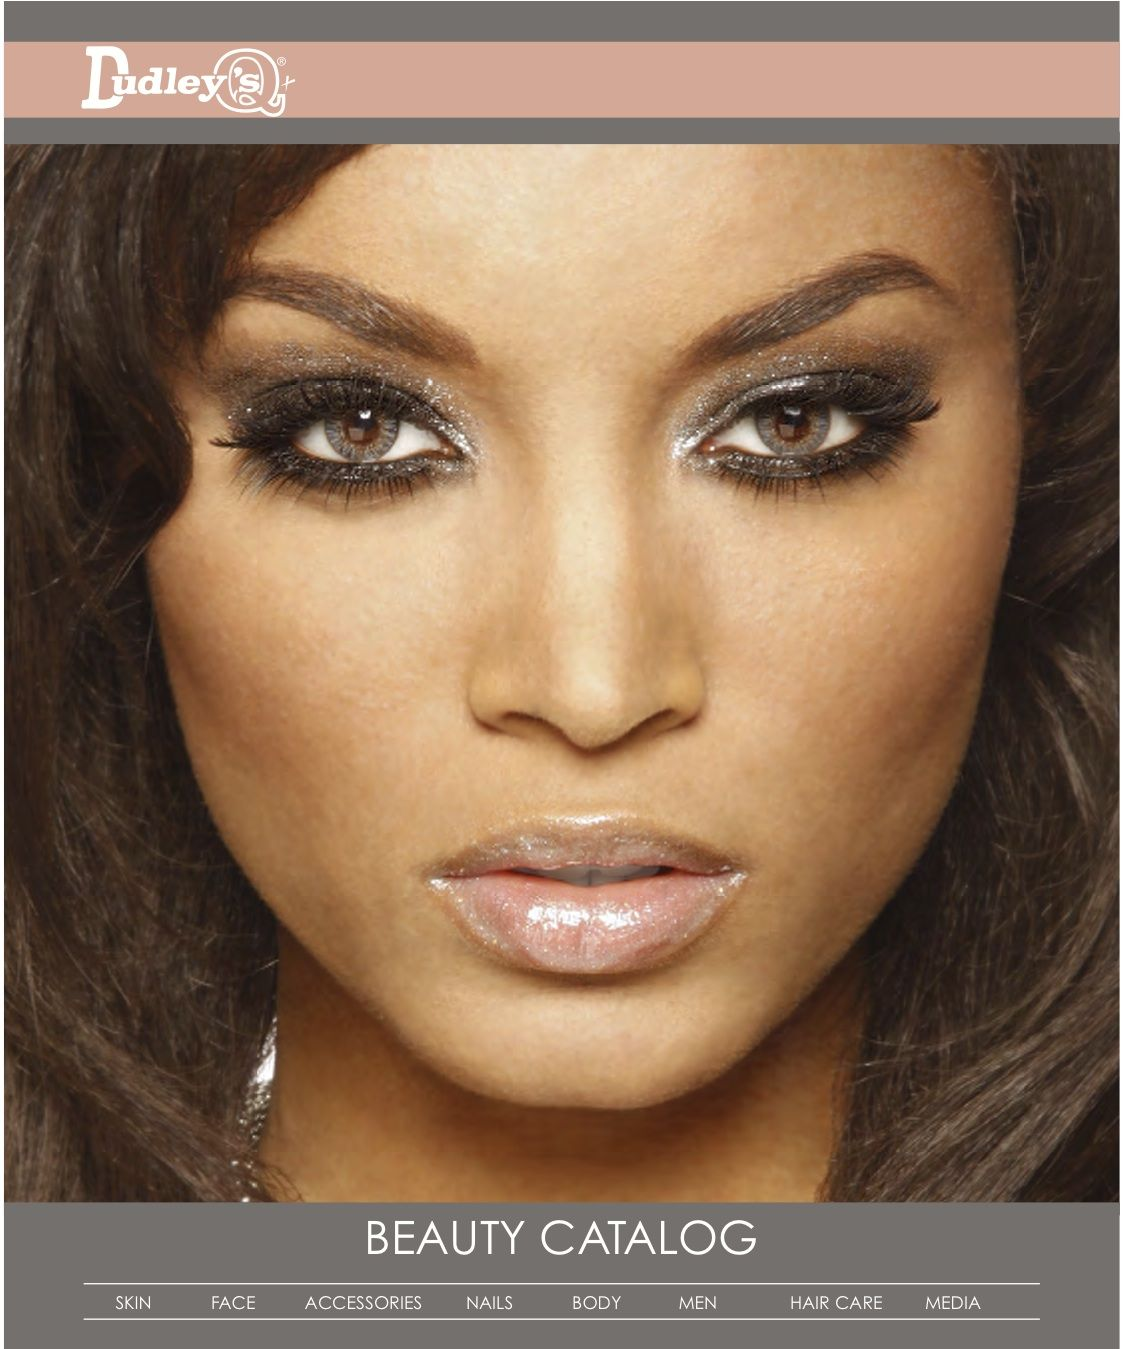 Dudley S Beauty Catalog Featuring Hair Care And Dudley Products Cosmetics Hair Care Natural Hair Styles Beauty